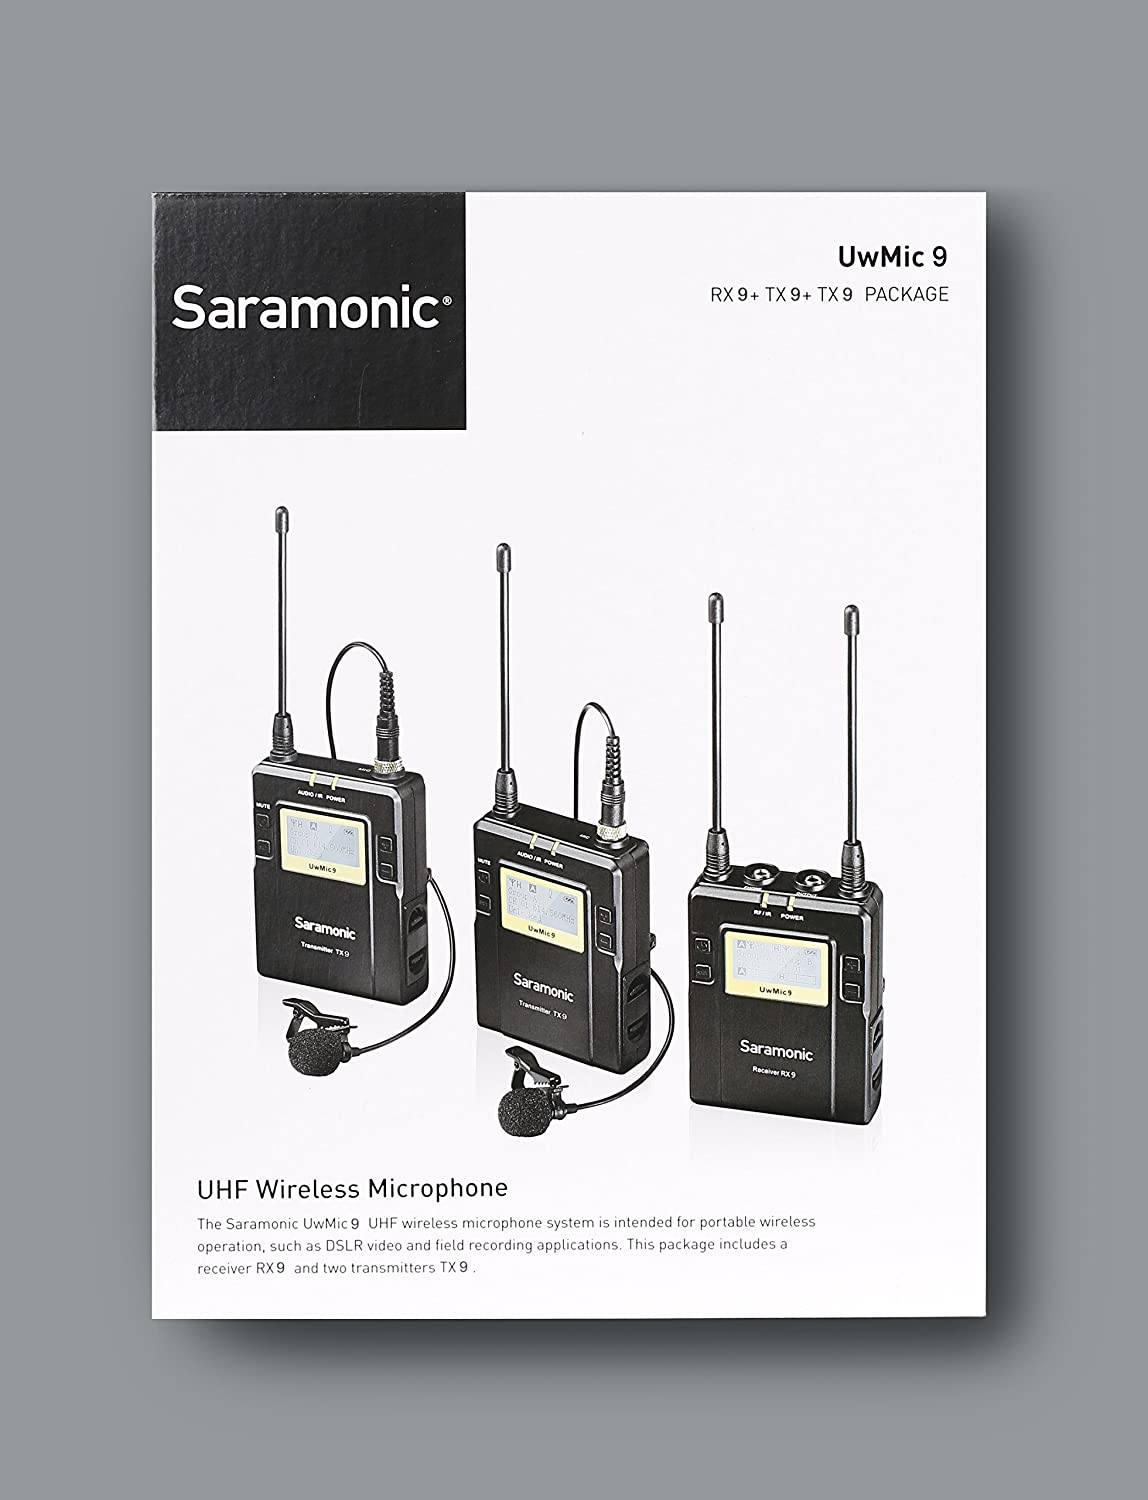 81w3W8W2J8L._SL1500_ saramonic uwmic9 wireless receiver and twin transmitter kit Basic Electrical Wiring Diagrams at edmiracle.co